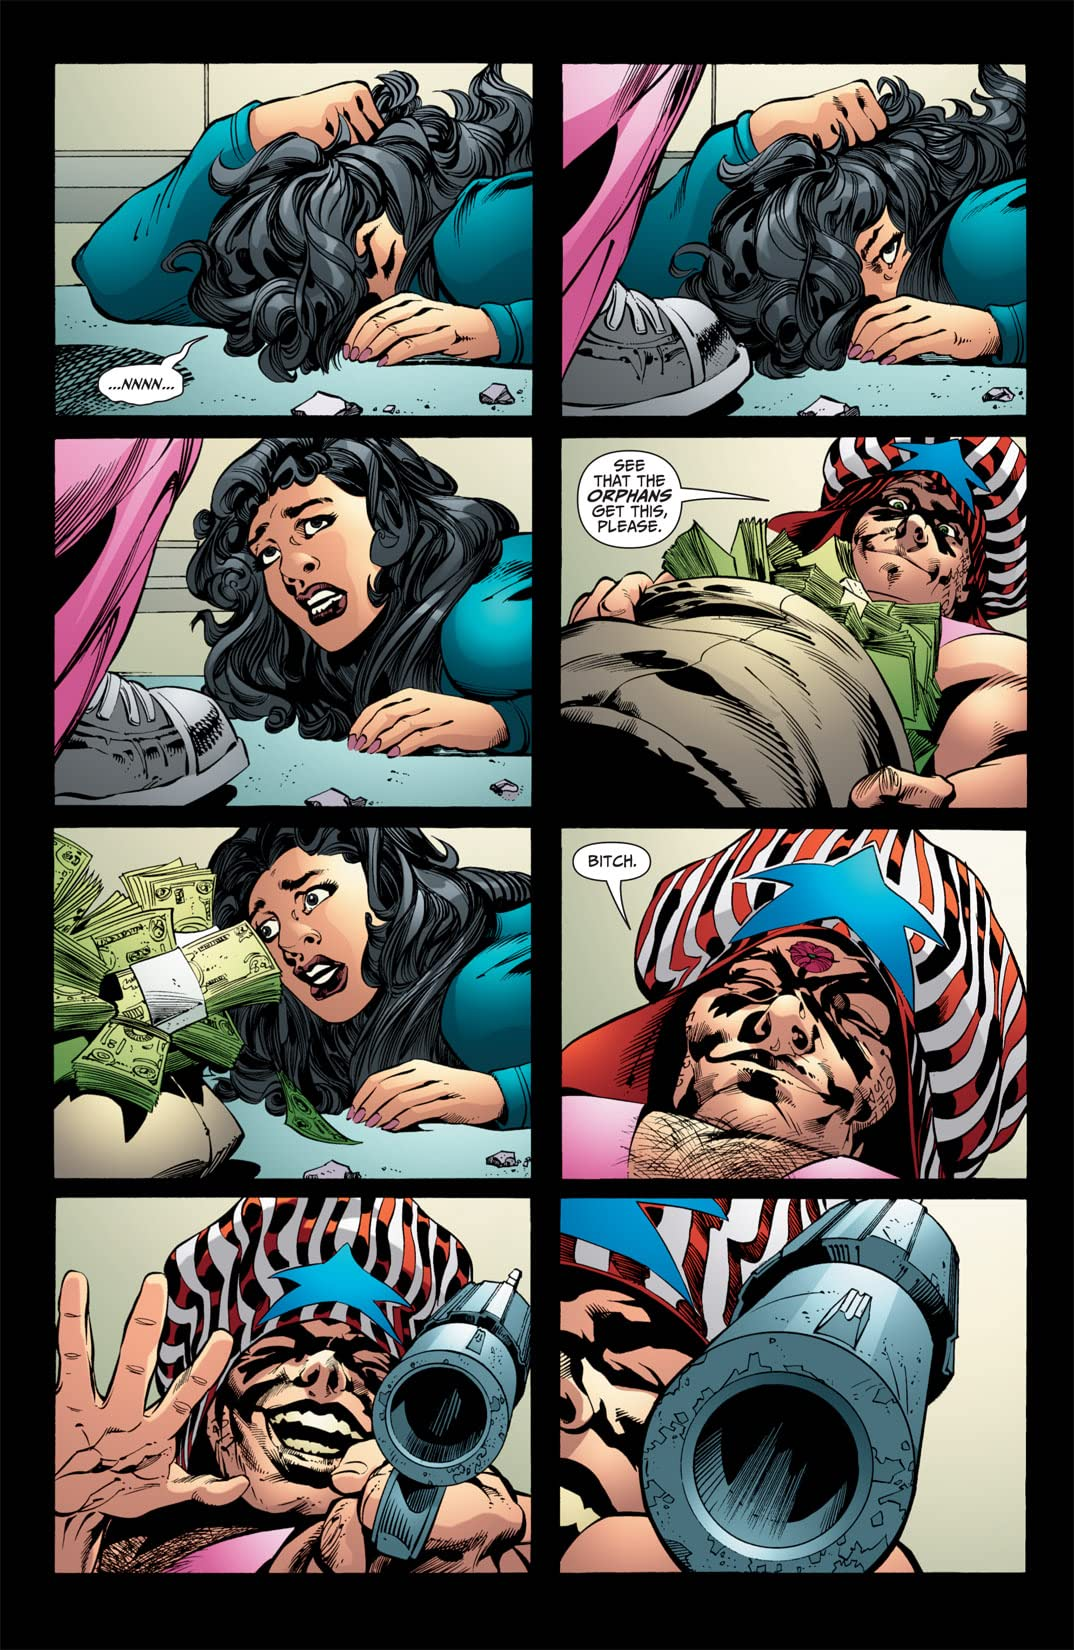 Tales of the Unexpected #5 (of 8)